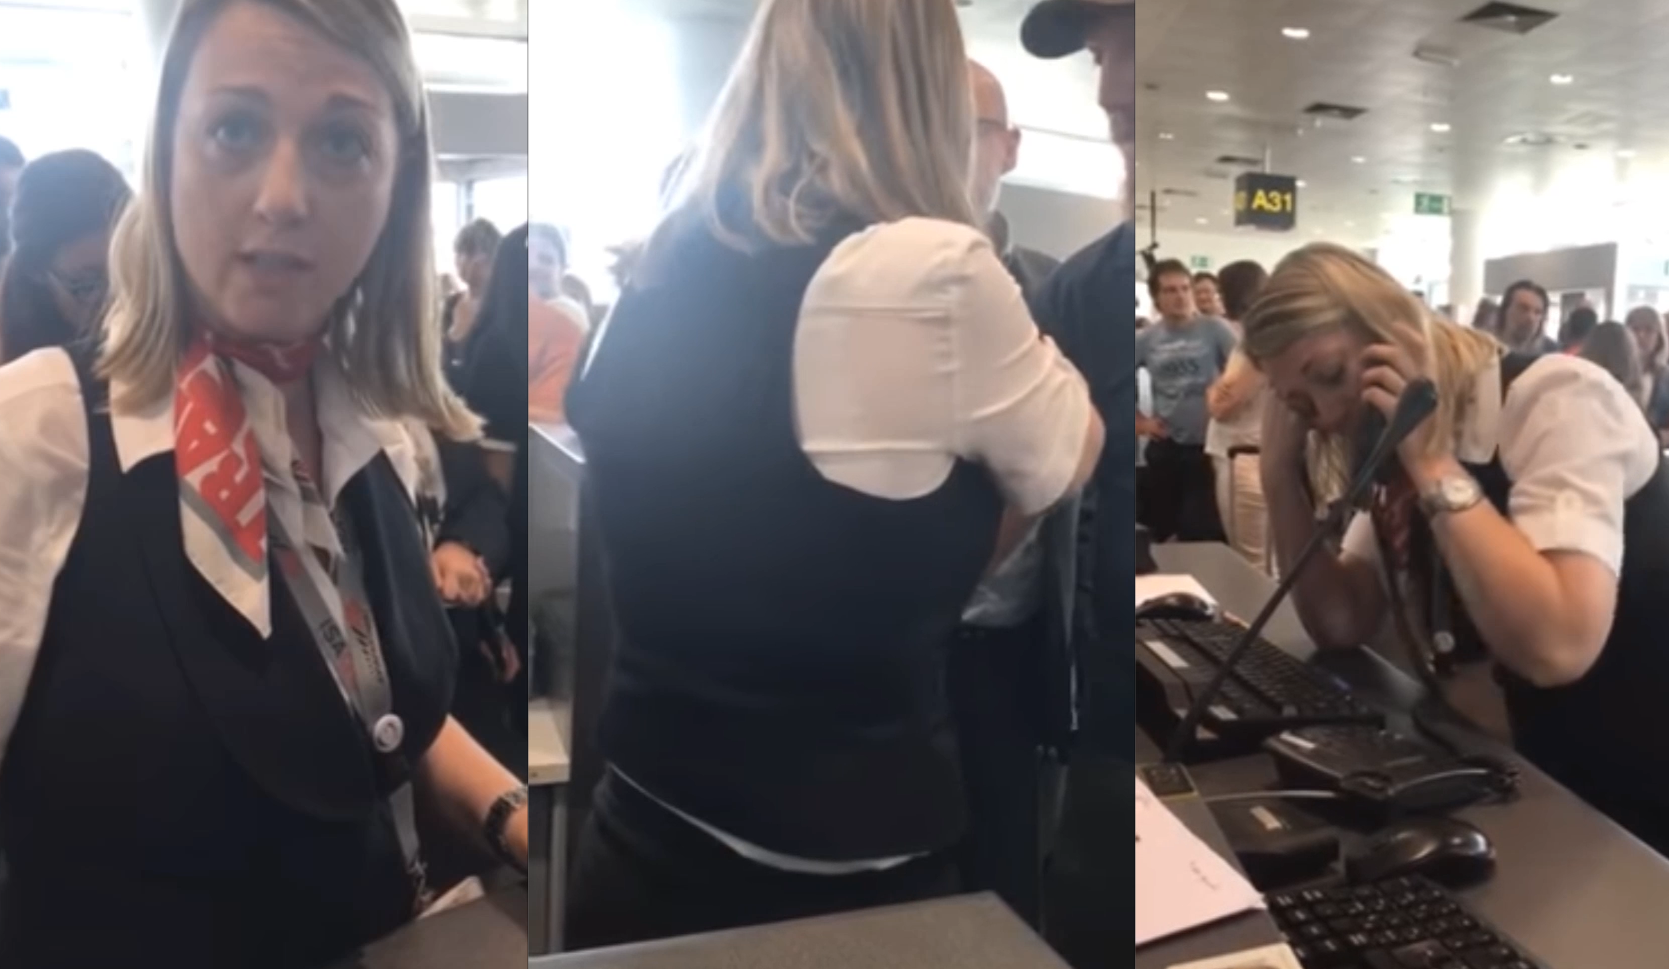 Flight Attendant Brought To Tears By Passenger's Appalling Dummy Spit